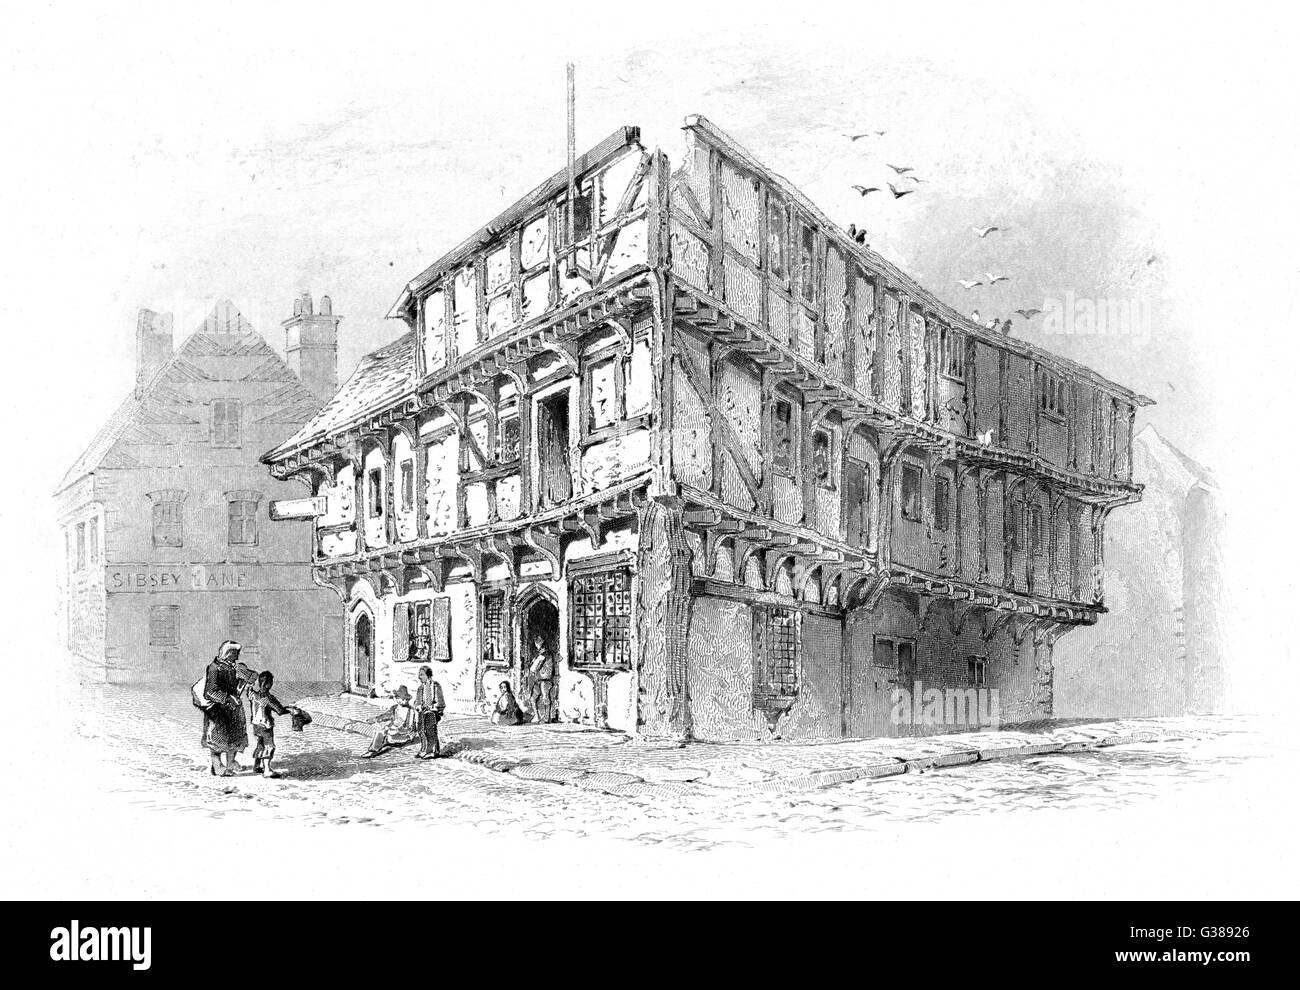 Old house, probably 14th to  15th century, in Boston,  Lincolnshire, England        Date: 15th century - Stock Image